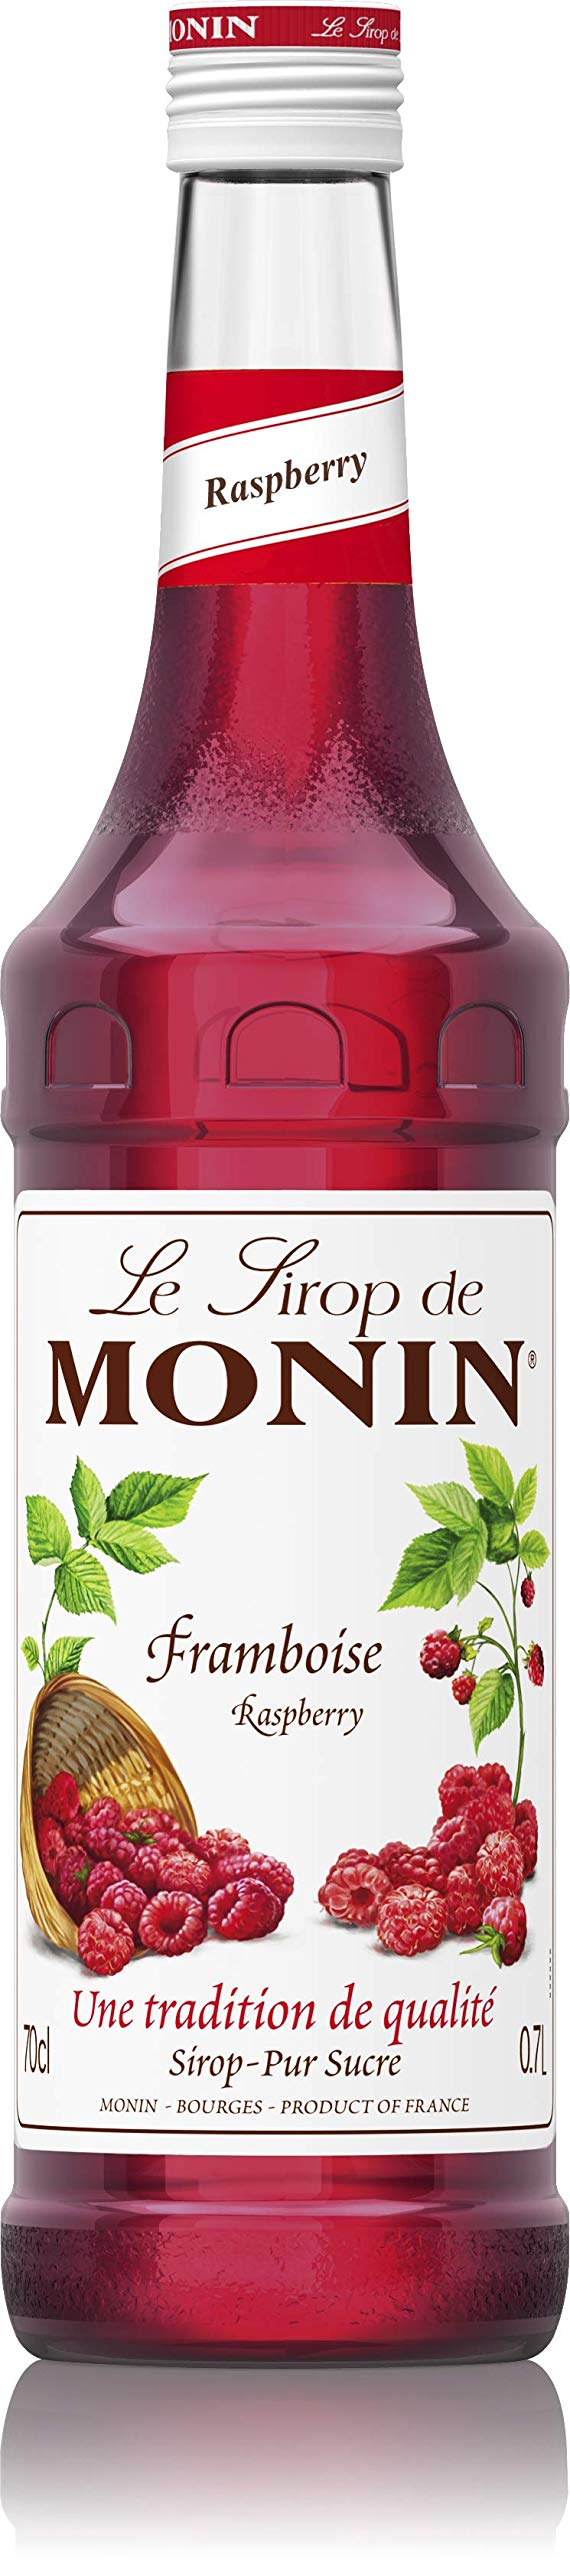 Monin-Gomme-Syrup